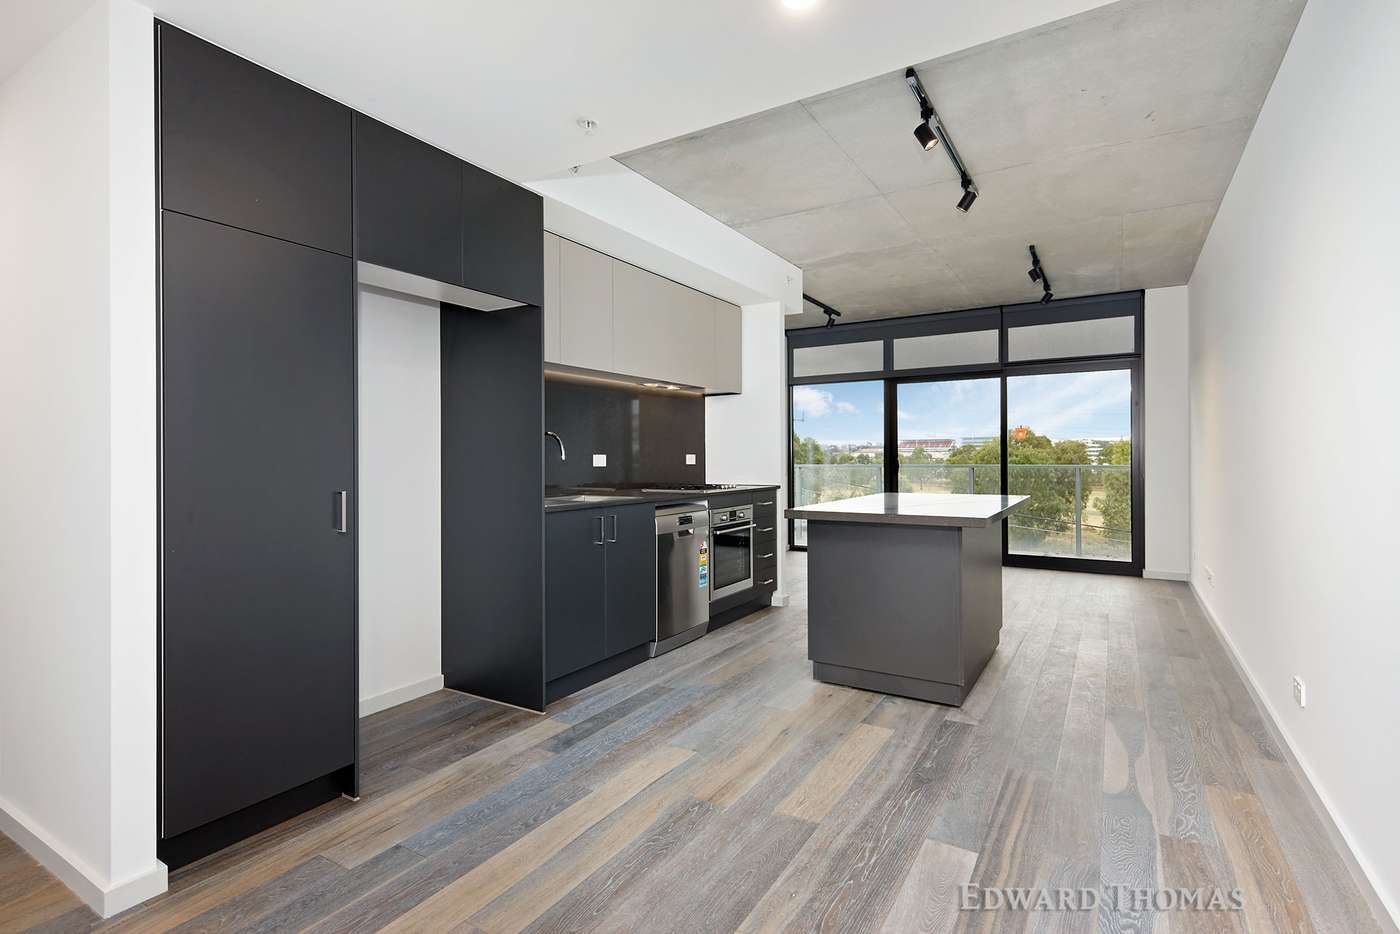 Main view of Homely apartment listing, 339/77 Hobsons Road, Kensington VIC 3031